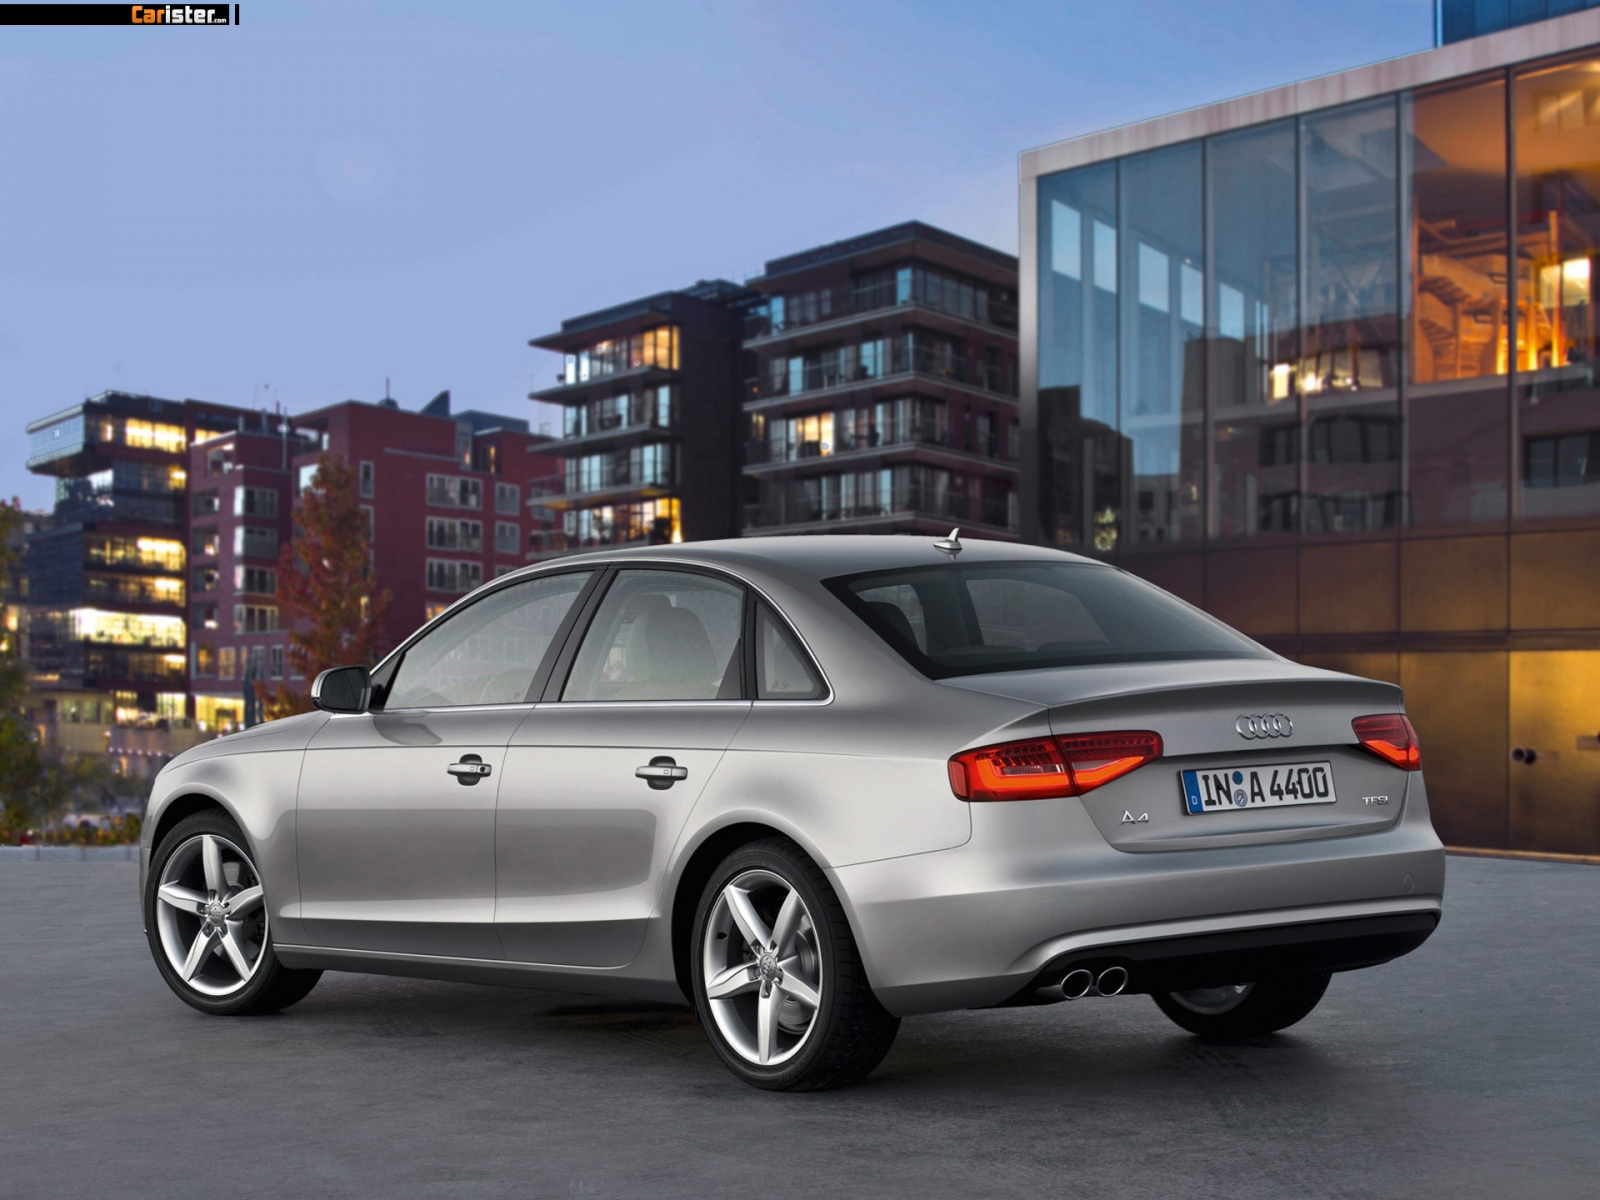 Audi A4 2012 - Photo 20 - Taille: 1600x1200